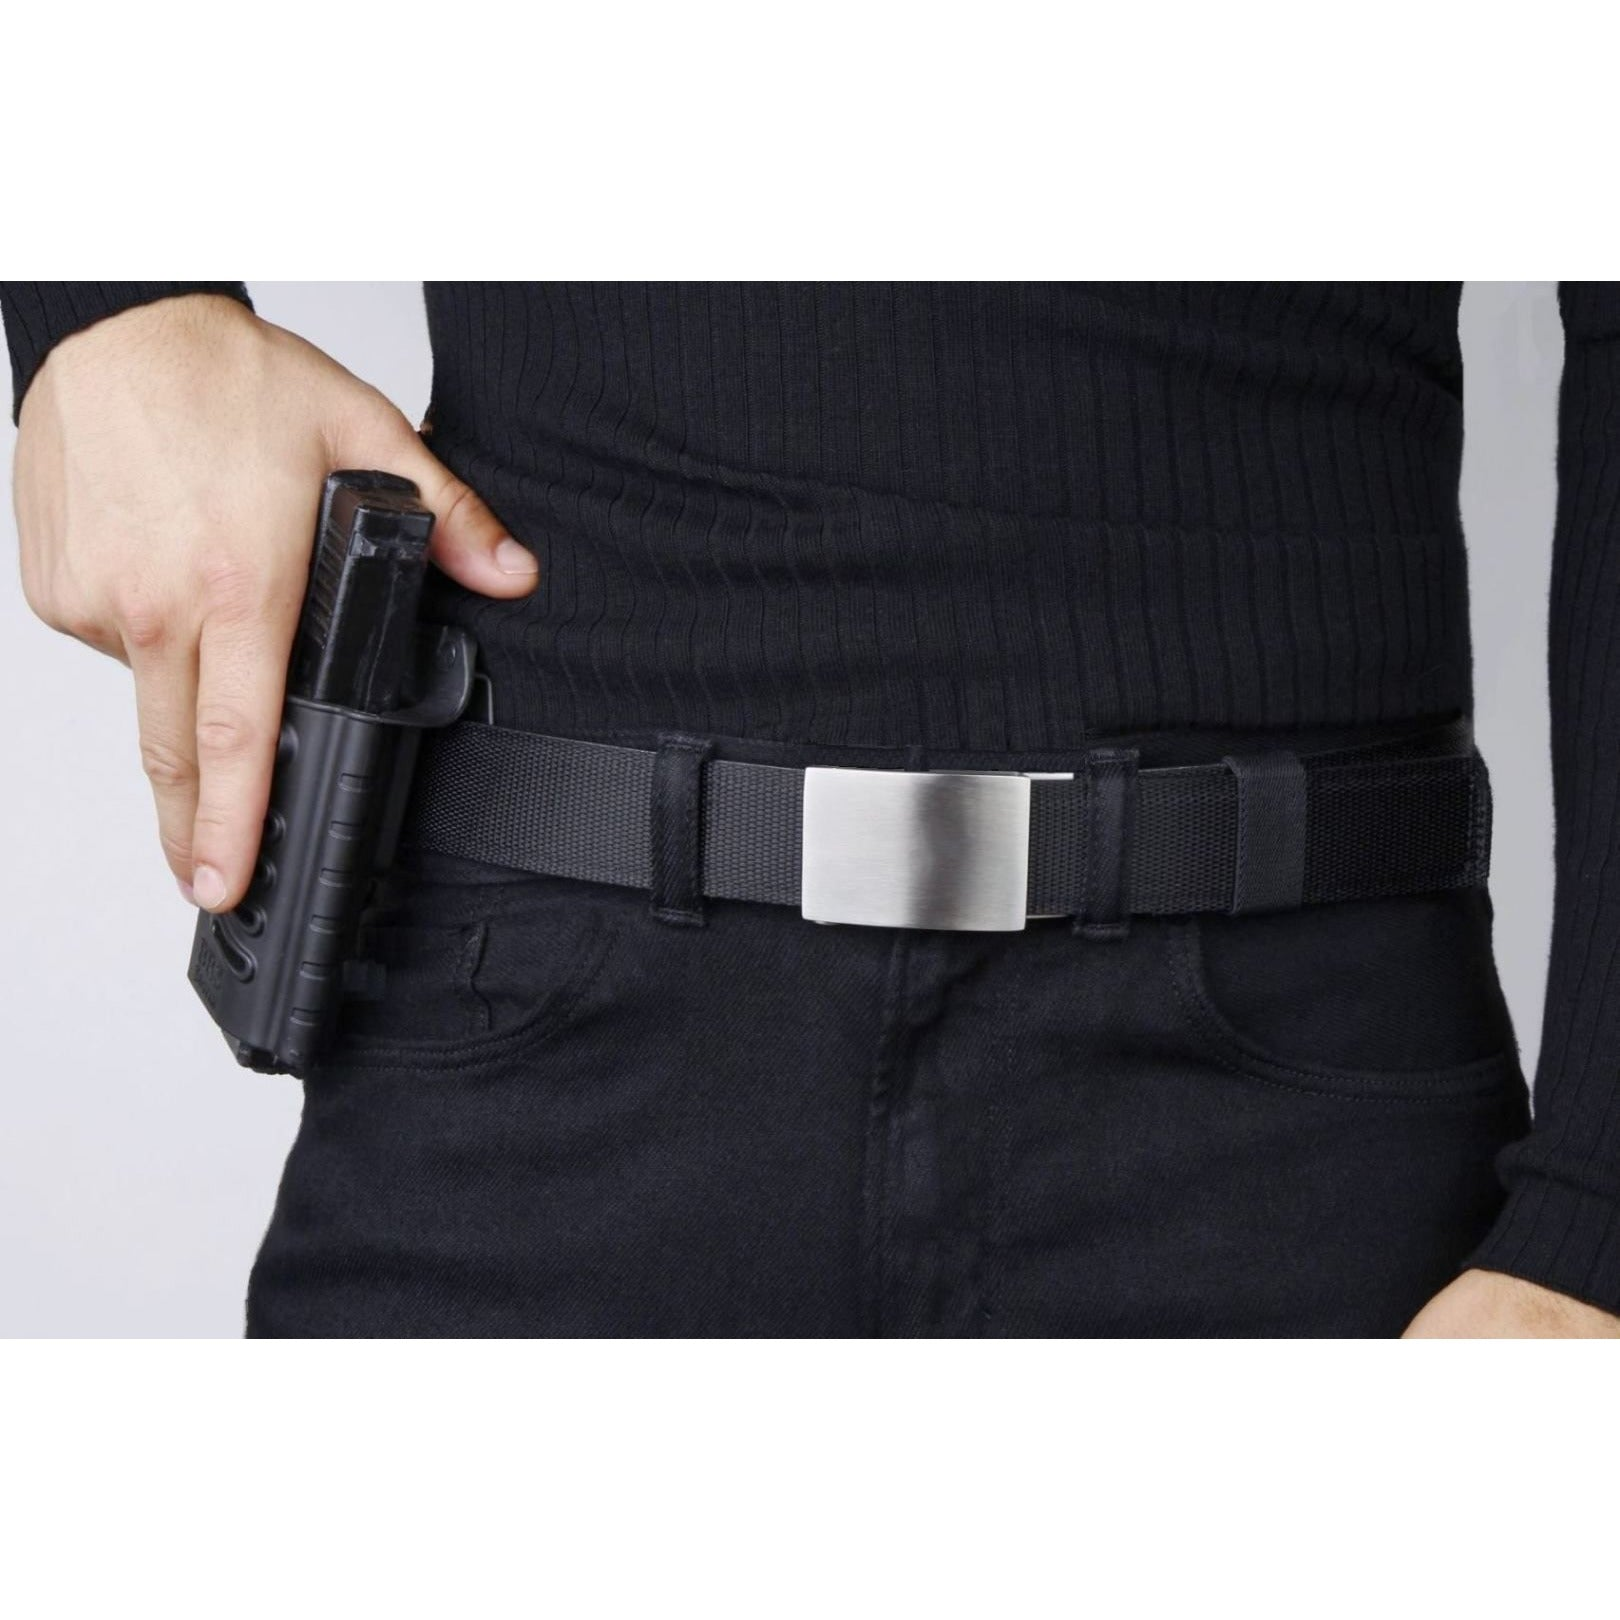 Kore Tactical Gun Belt X4 Stainless Steel Buckle Black Tactical Belt Kore Essentials Kore sells three swappable gun belt buckles and leather gun belts in brown or black, plus slick little hangers that the buckle ratchet latches right onto for hanging the belt(s) vertically in your. x4 stainless steel buckle black tactical gun belt